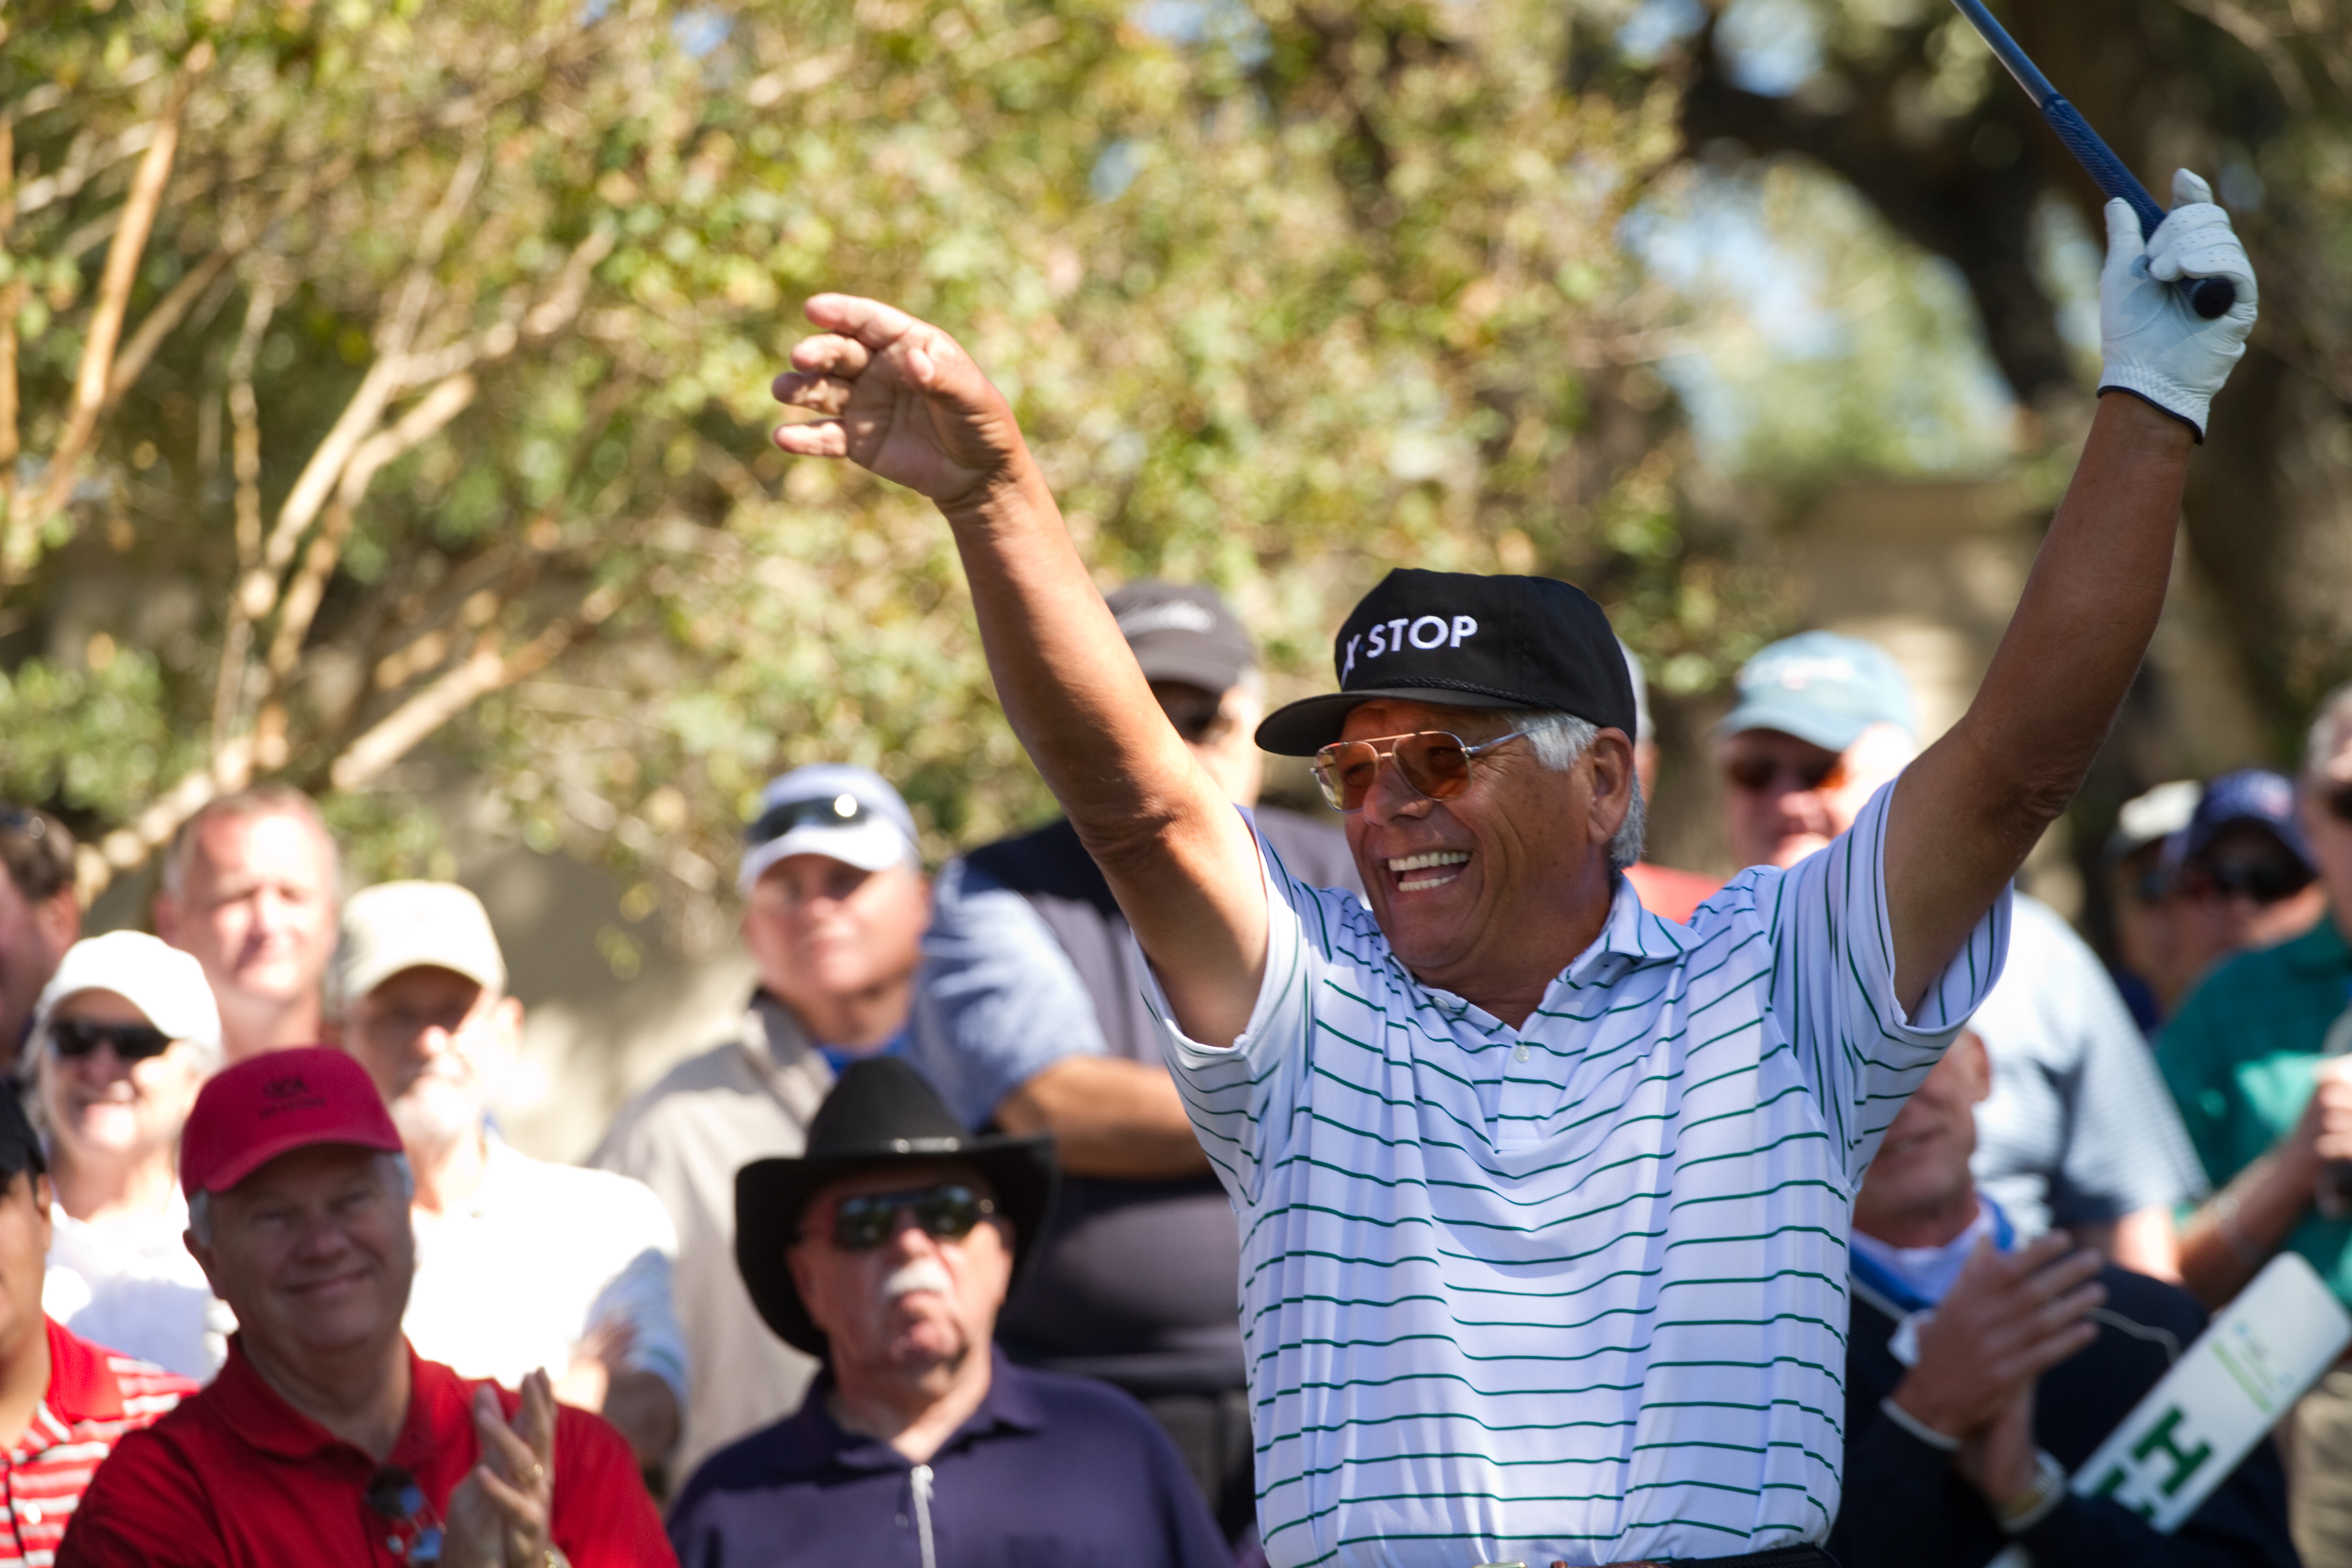 SAN ANTONIO, TX - OCTOBER 30: Lee Trevino prepares to tee off during the second round of the AT&T Championship at Oak Hills Country Club on October 30, 2010 in San Antonio, Texas. (Photo by Darren Carroll/Getty Images)